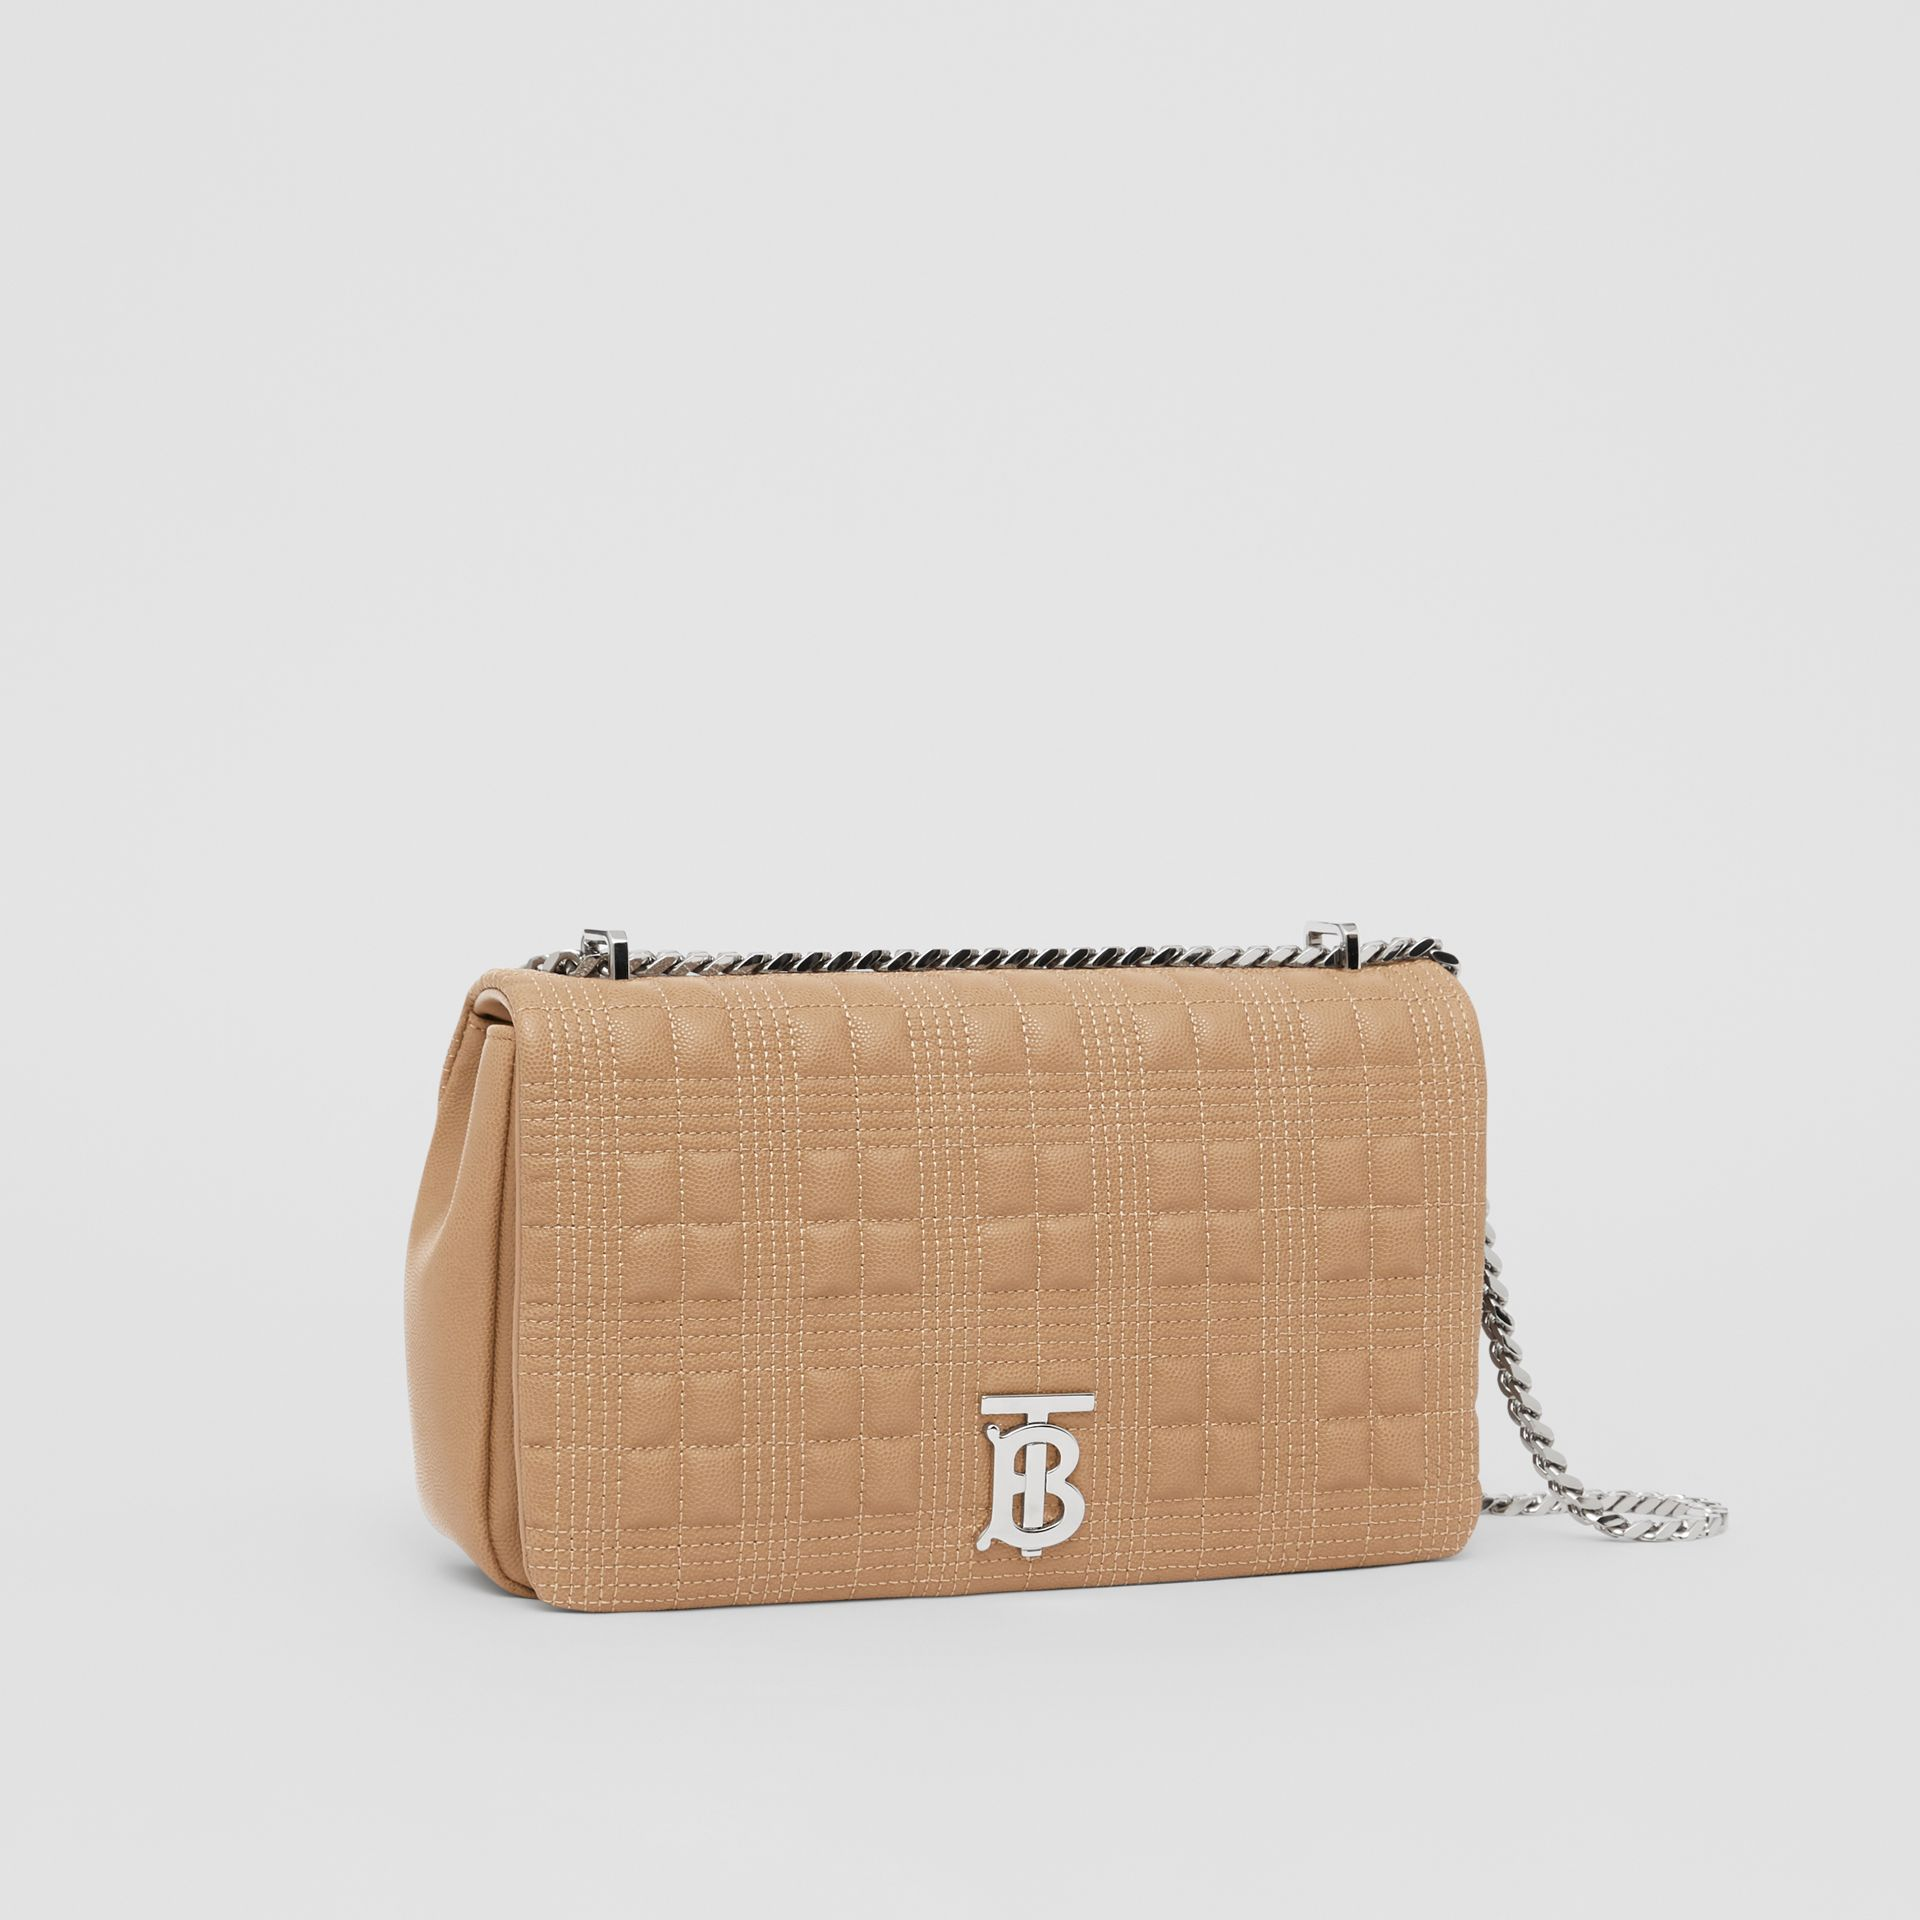 Medium Quilted Grainy Leather Lola Bag in Camel - Women | Burberry - gallery image 4